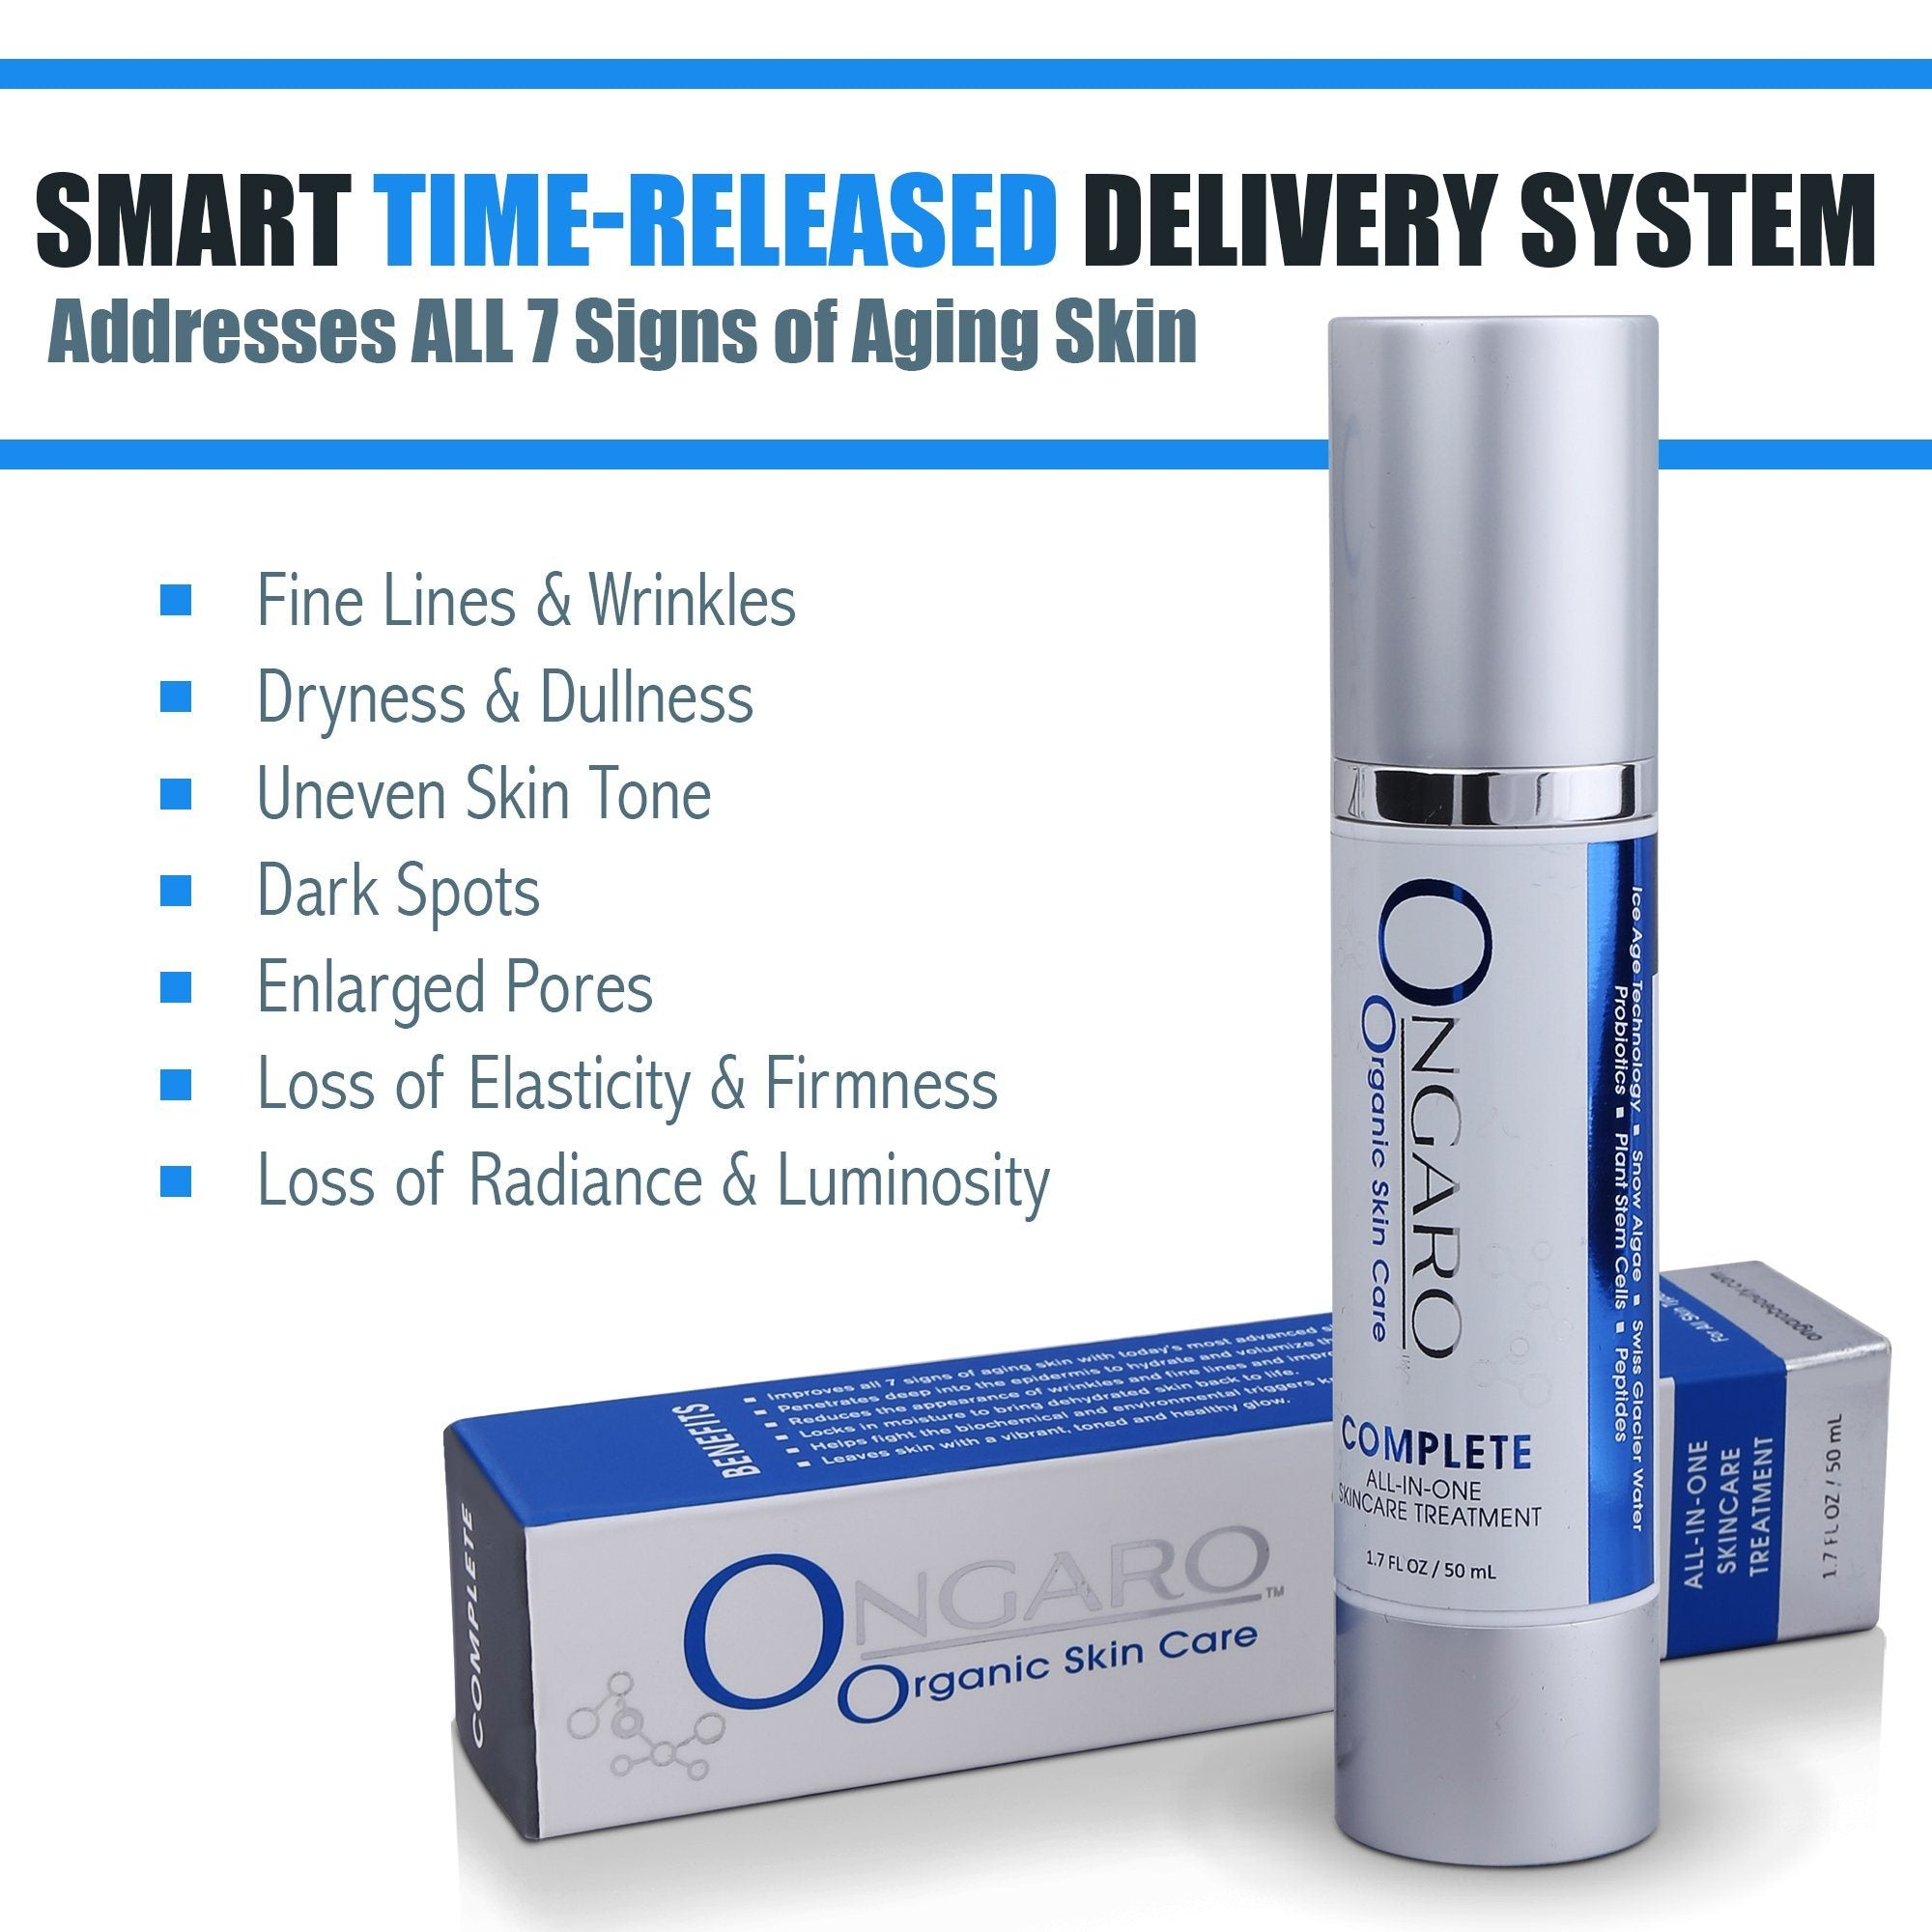 Complete All-In-One Skincare Treatment | Ongaro Beauty 1.7oz